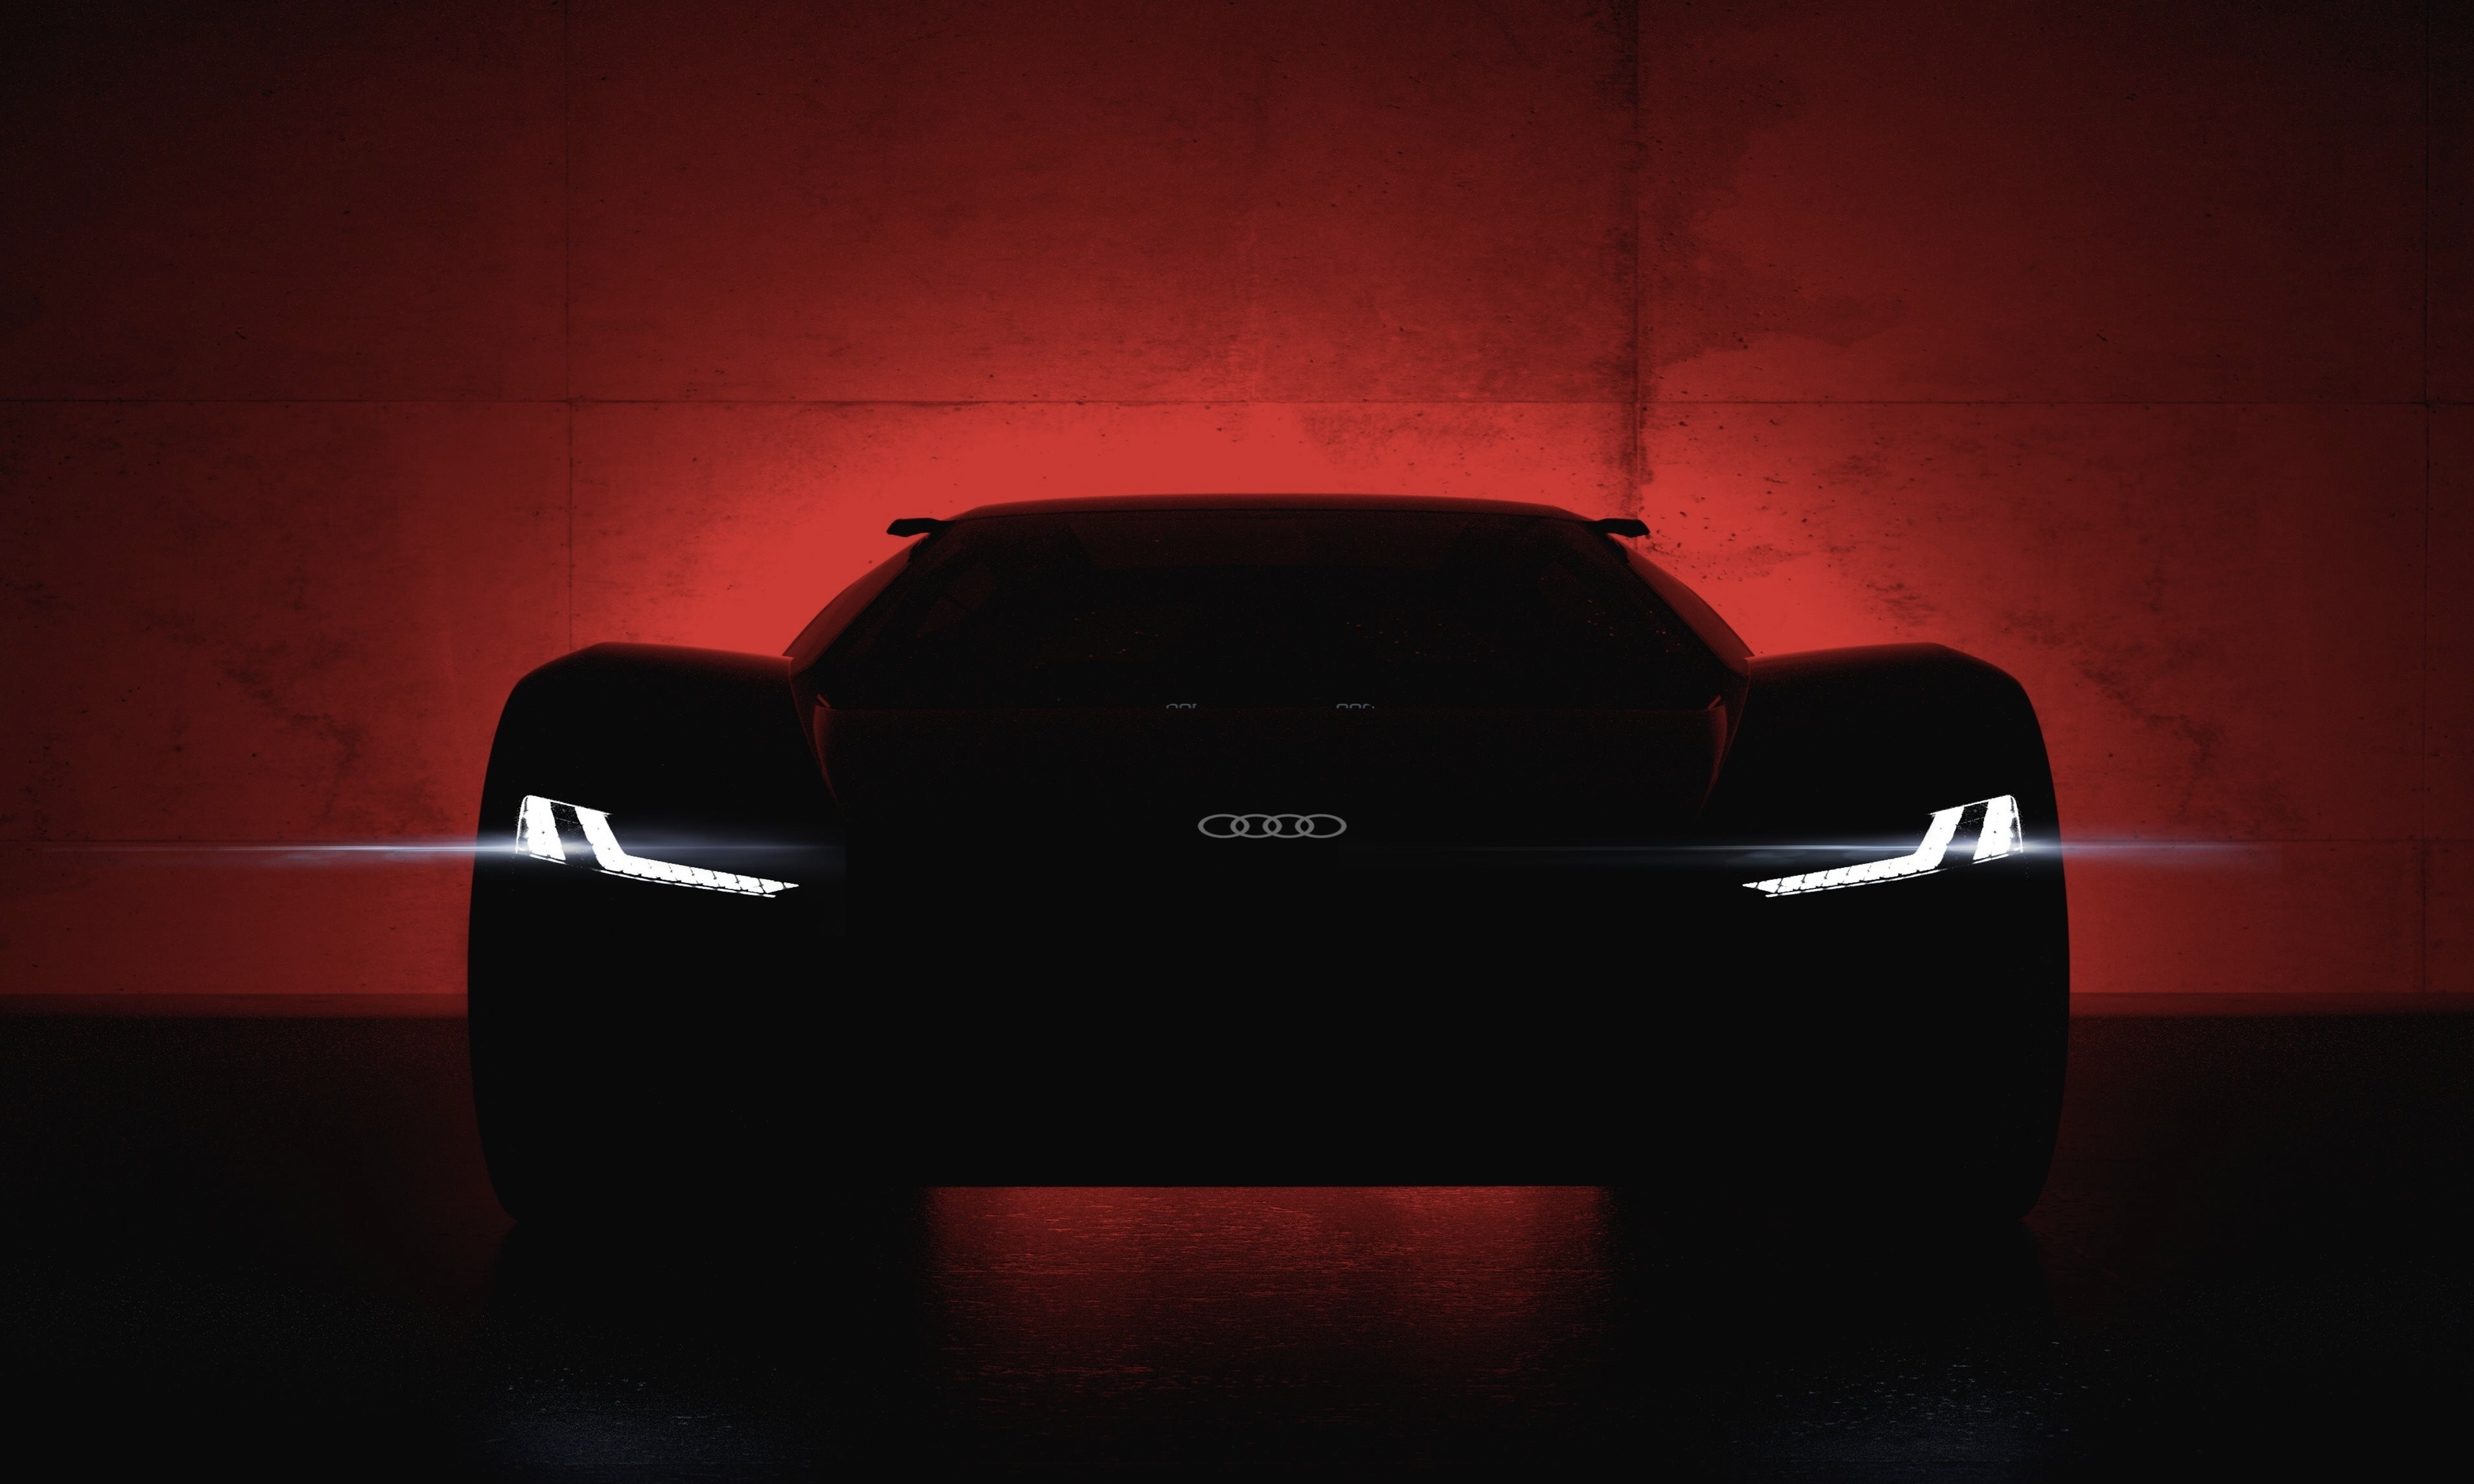 Wallpaper Cars Photo Picture Audi Car Lights The